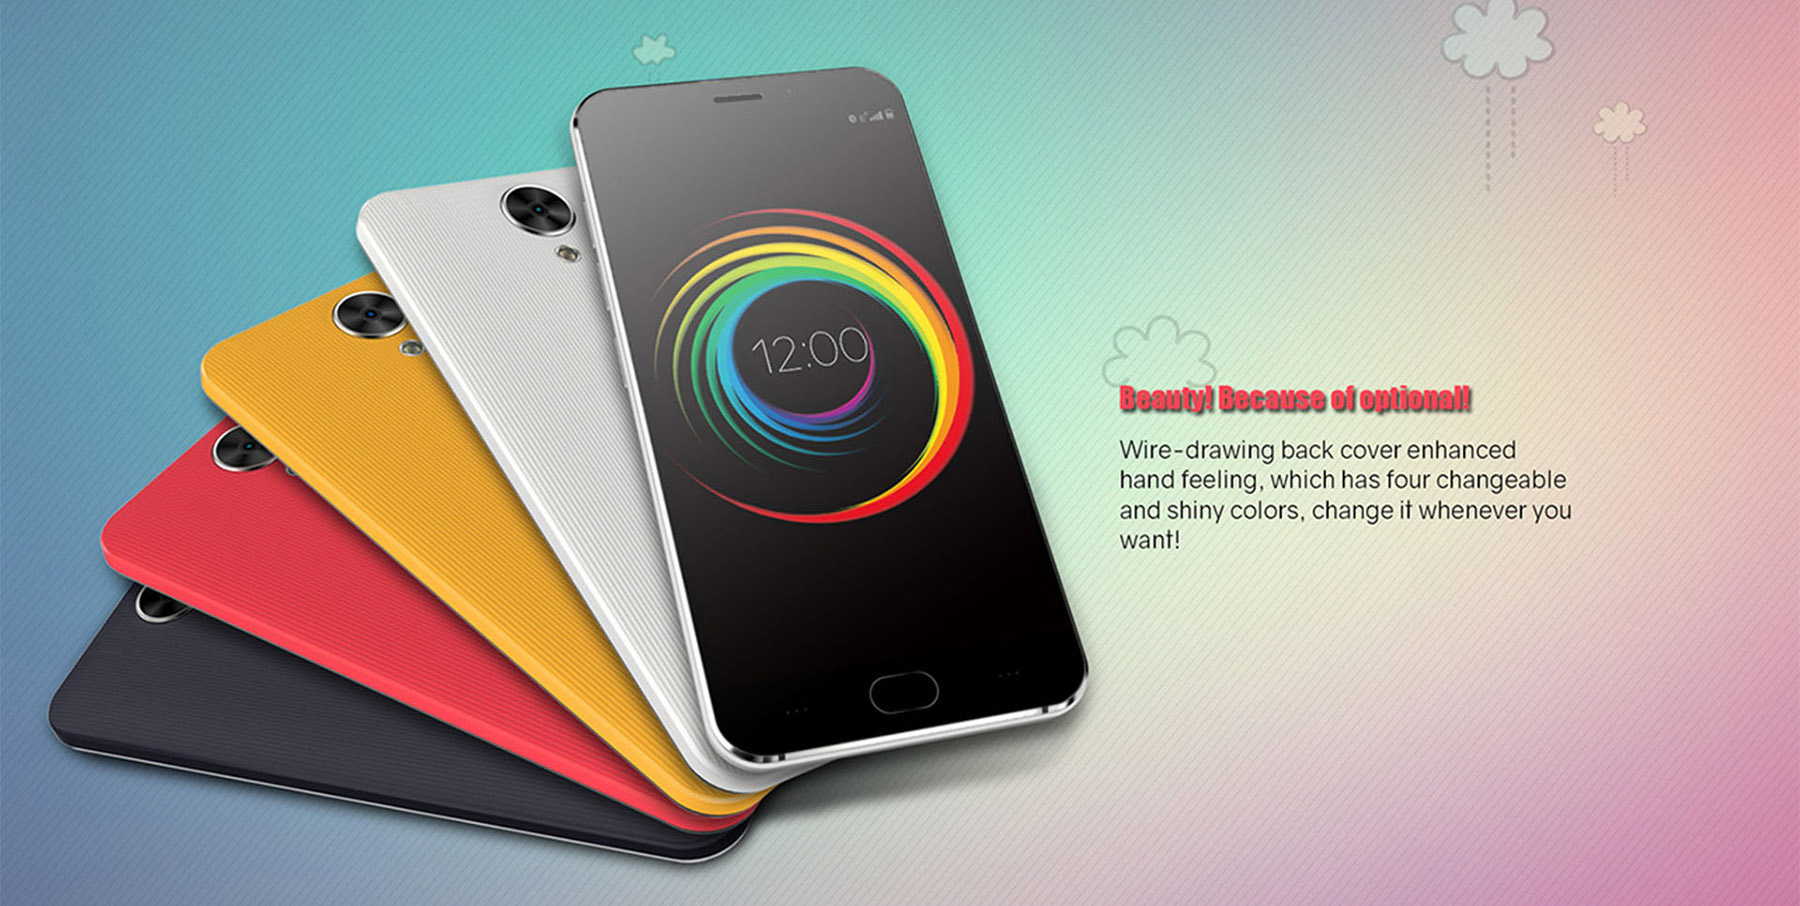 KingZone S2 4.5 inch Android 6.0 3G Smartphone MTK6580 Quad Core 1.3GHz 1GB RAM 8GB ROM Dual Cameras Bluetooth 4.0